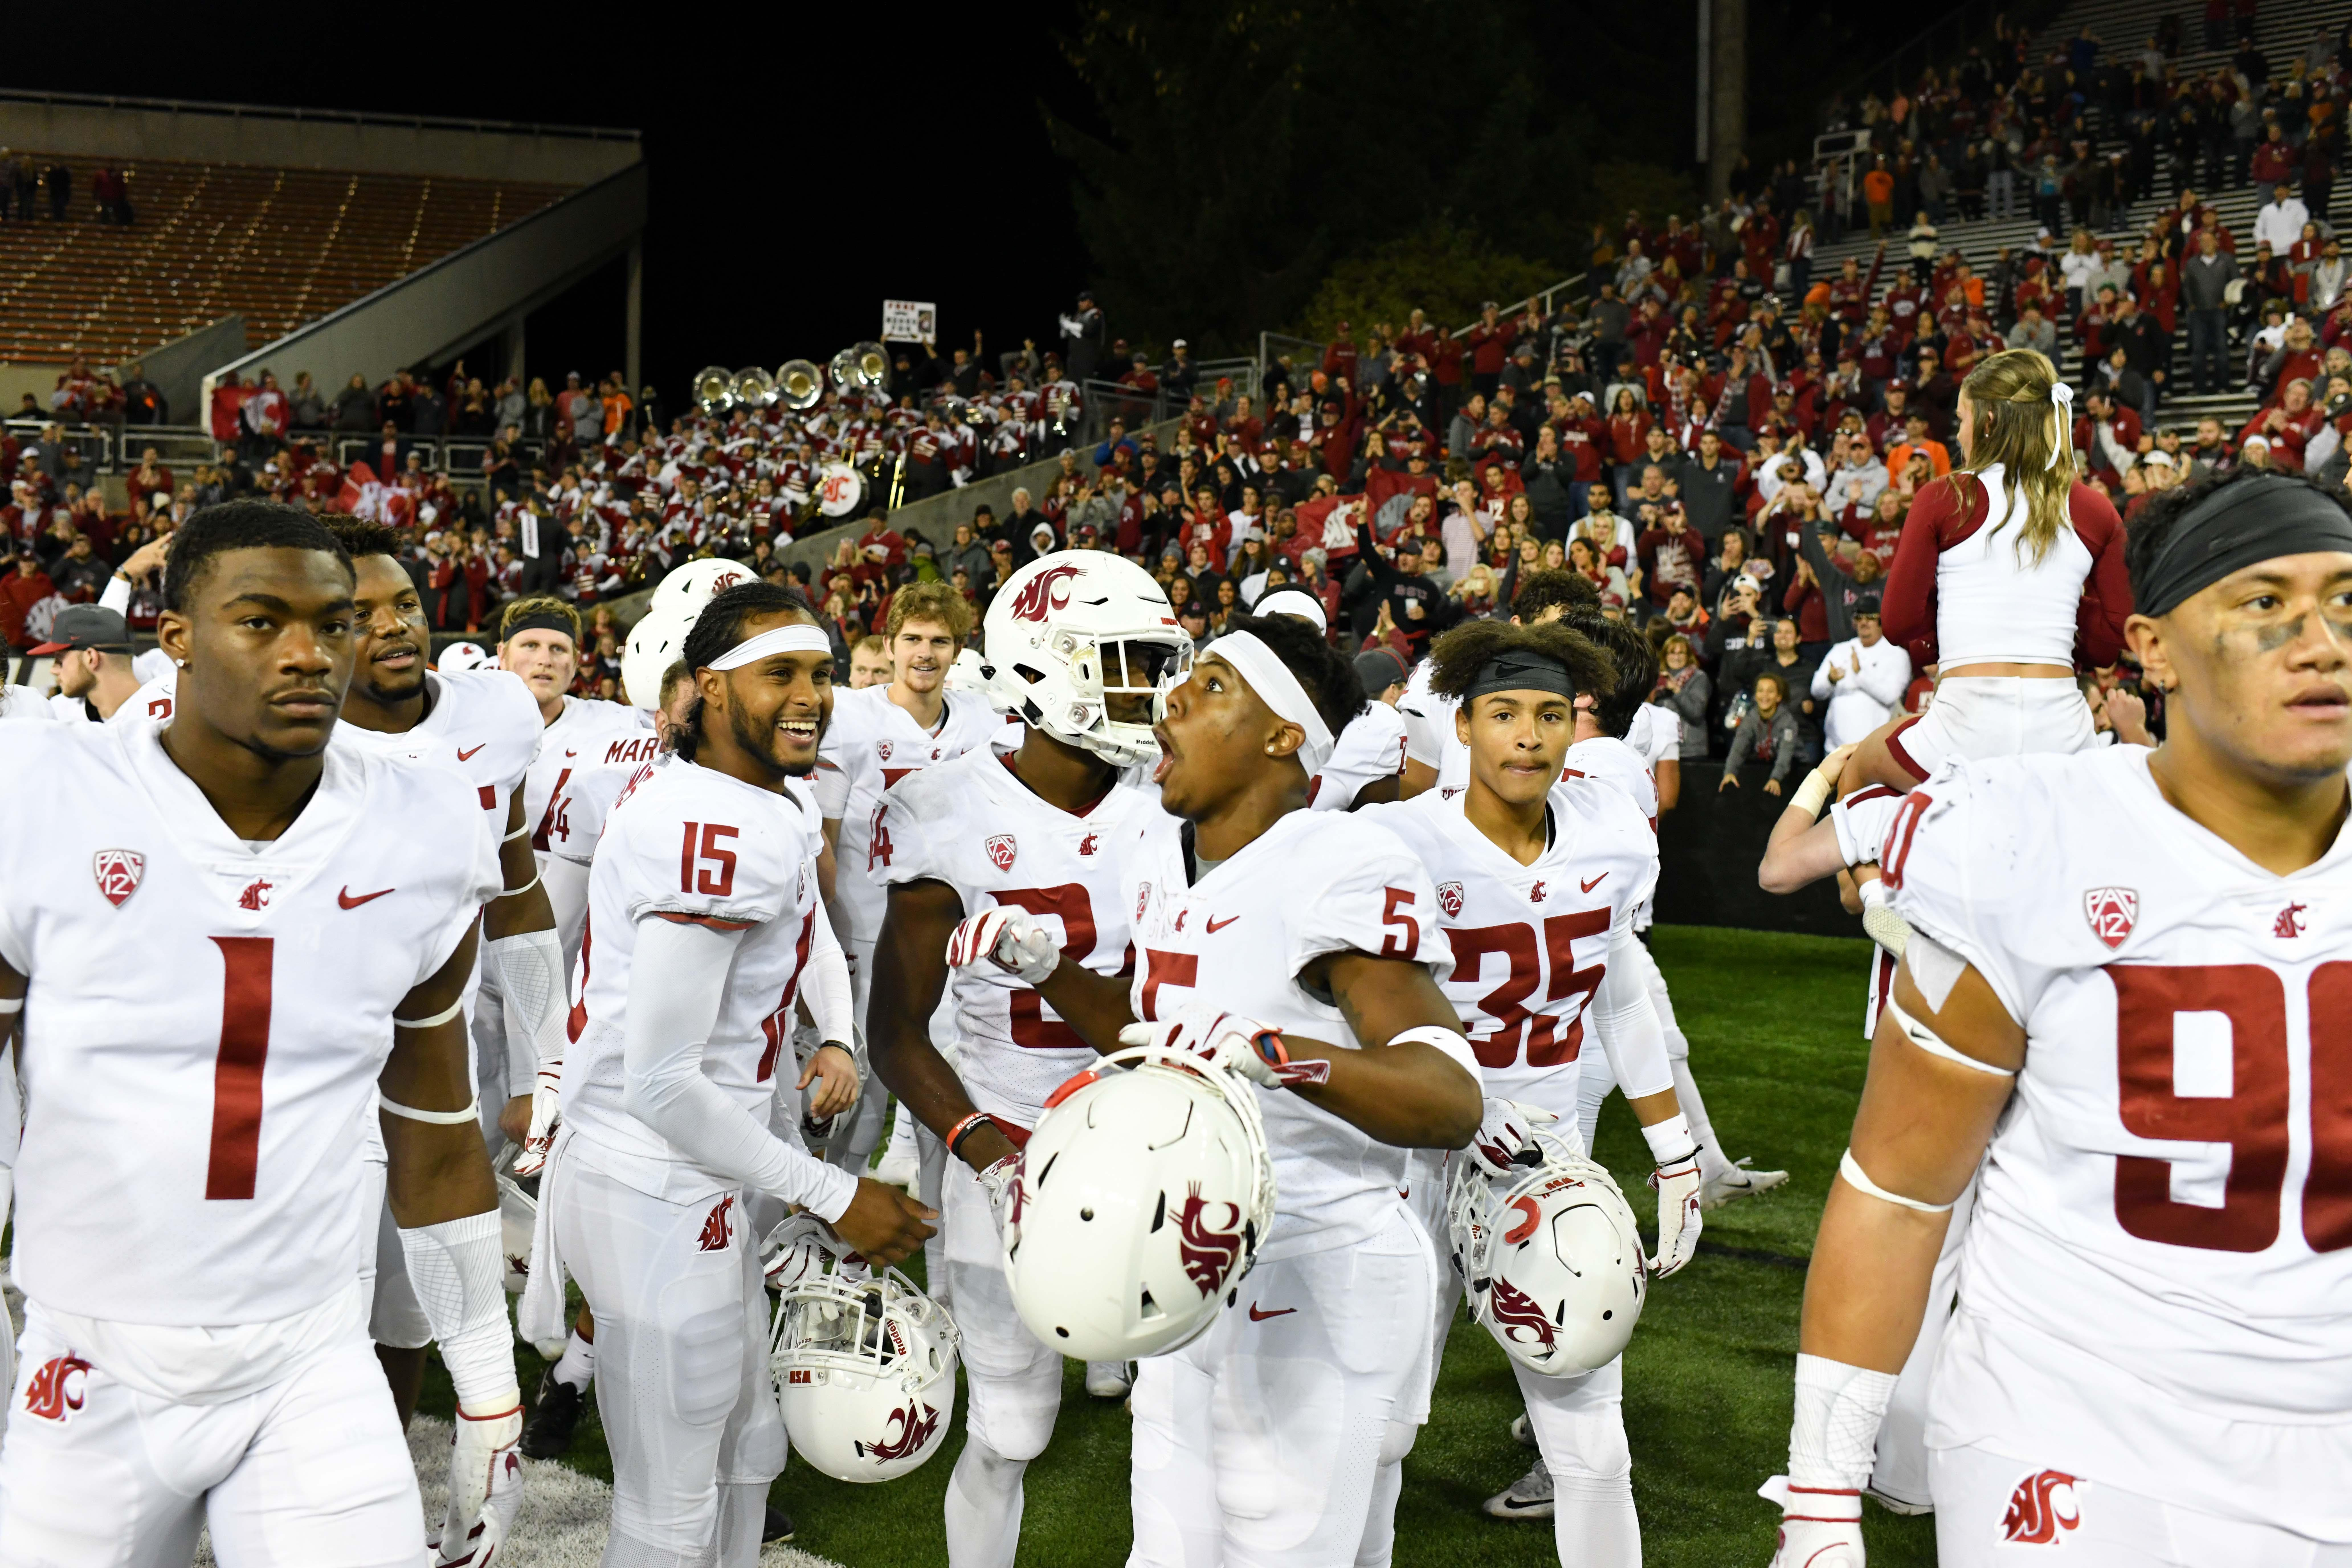 Back half of WSU schedule is loaded, but Cougars have